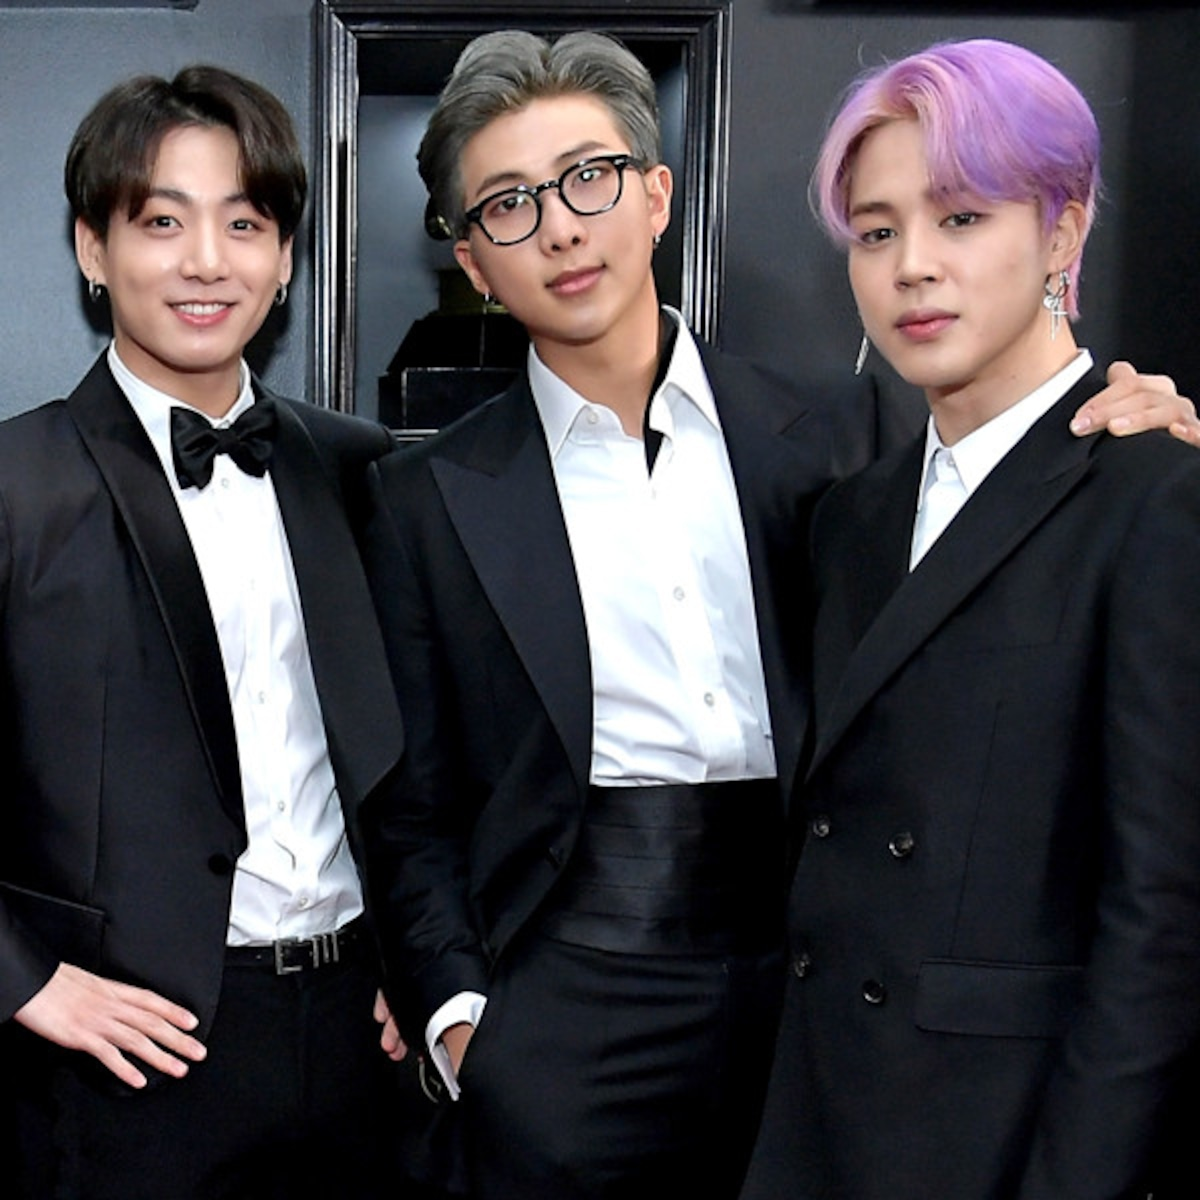 Bts Is So Thankful To Attend The 2019 Grammys E News